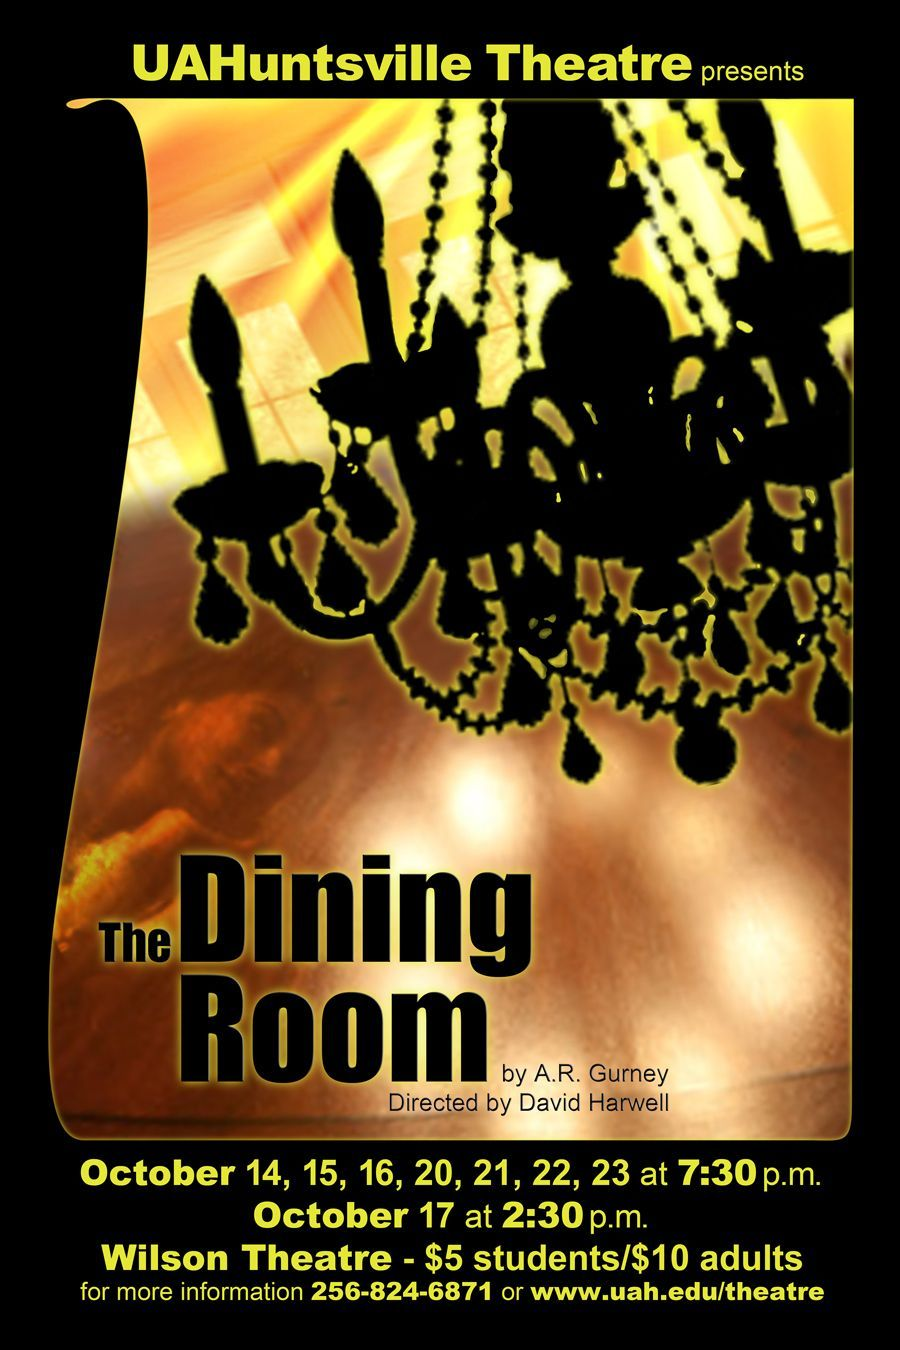 an analysis of the scene from the dining room by a r gurney